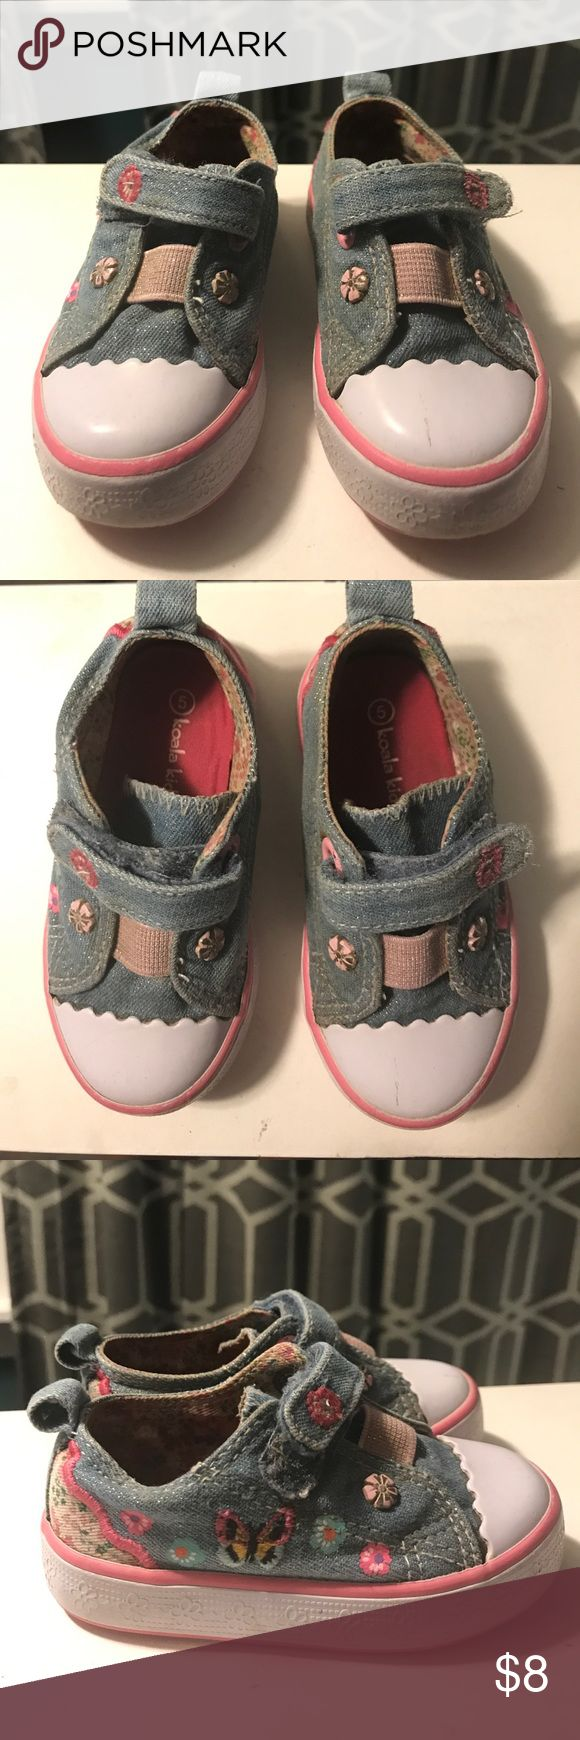 Adorable toddler sneakers Good shape, cute toddler sneakers. Floral and butterflies on denim. Great basic! Koala Kids Shoes Sneakers